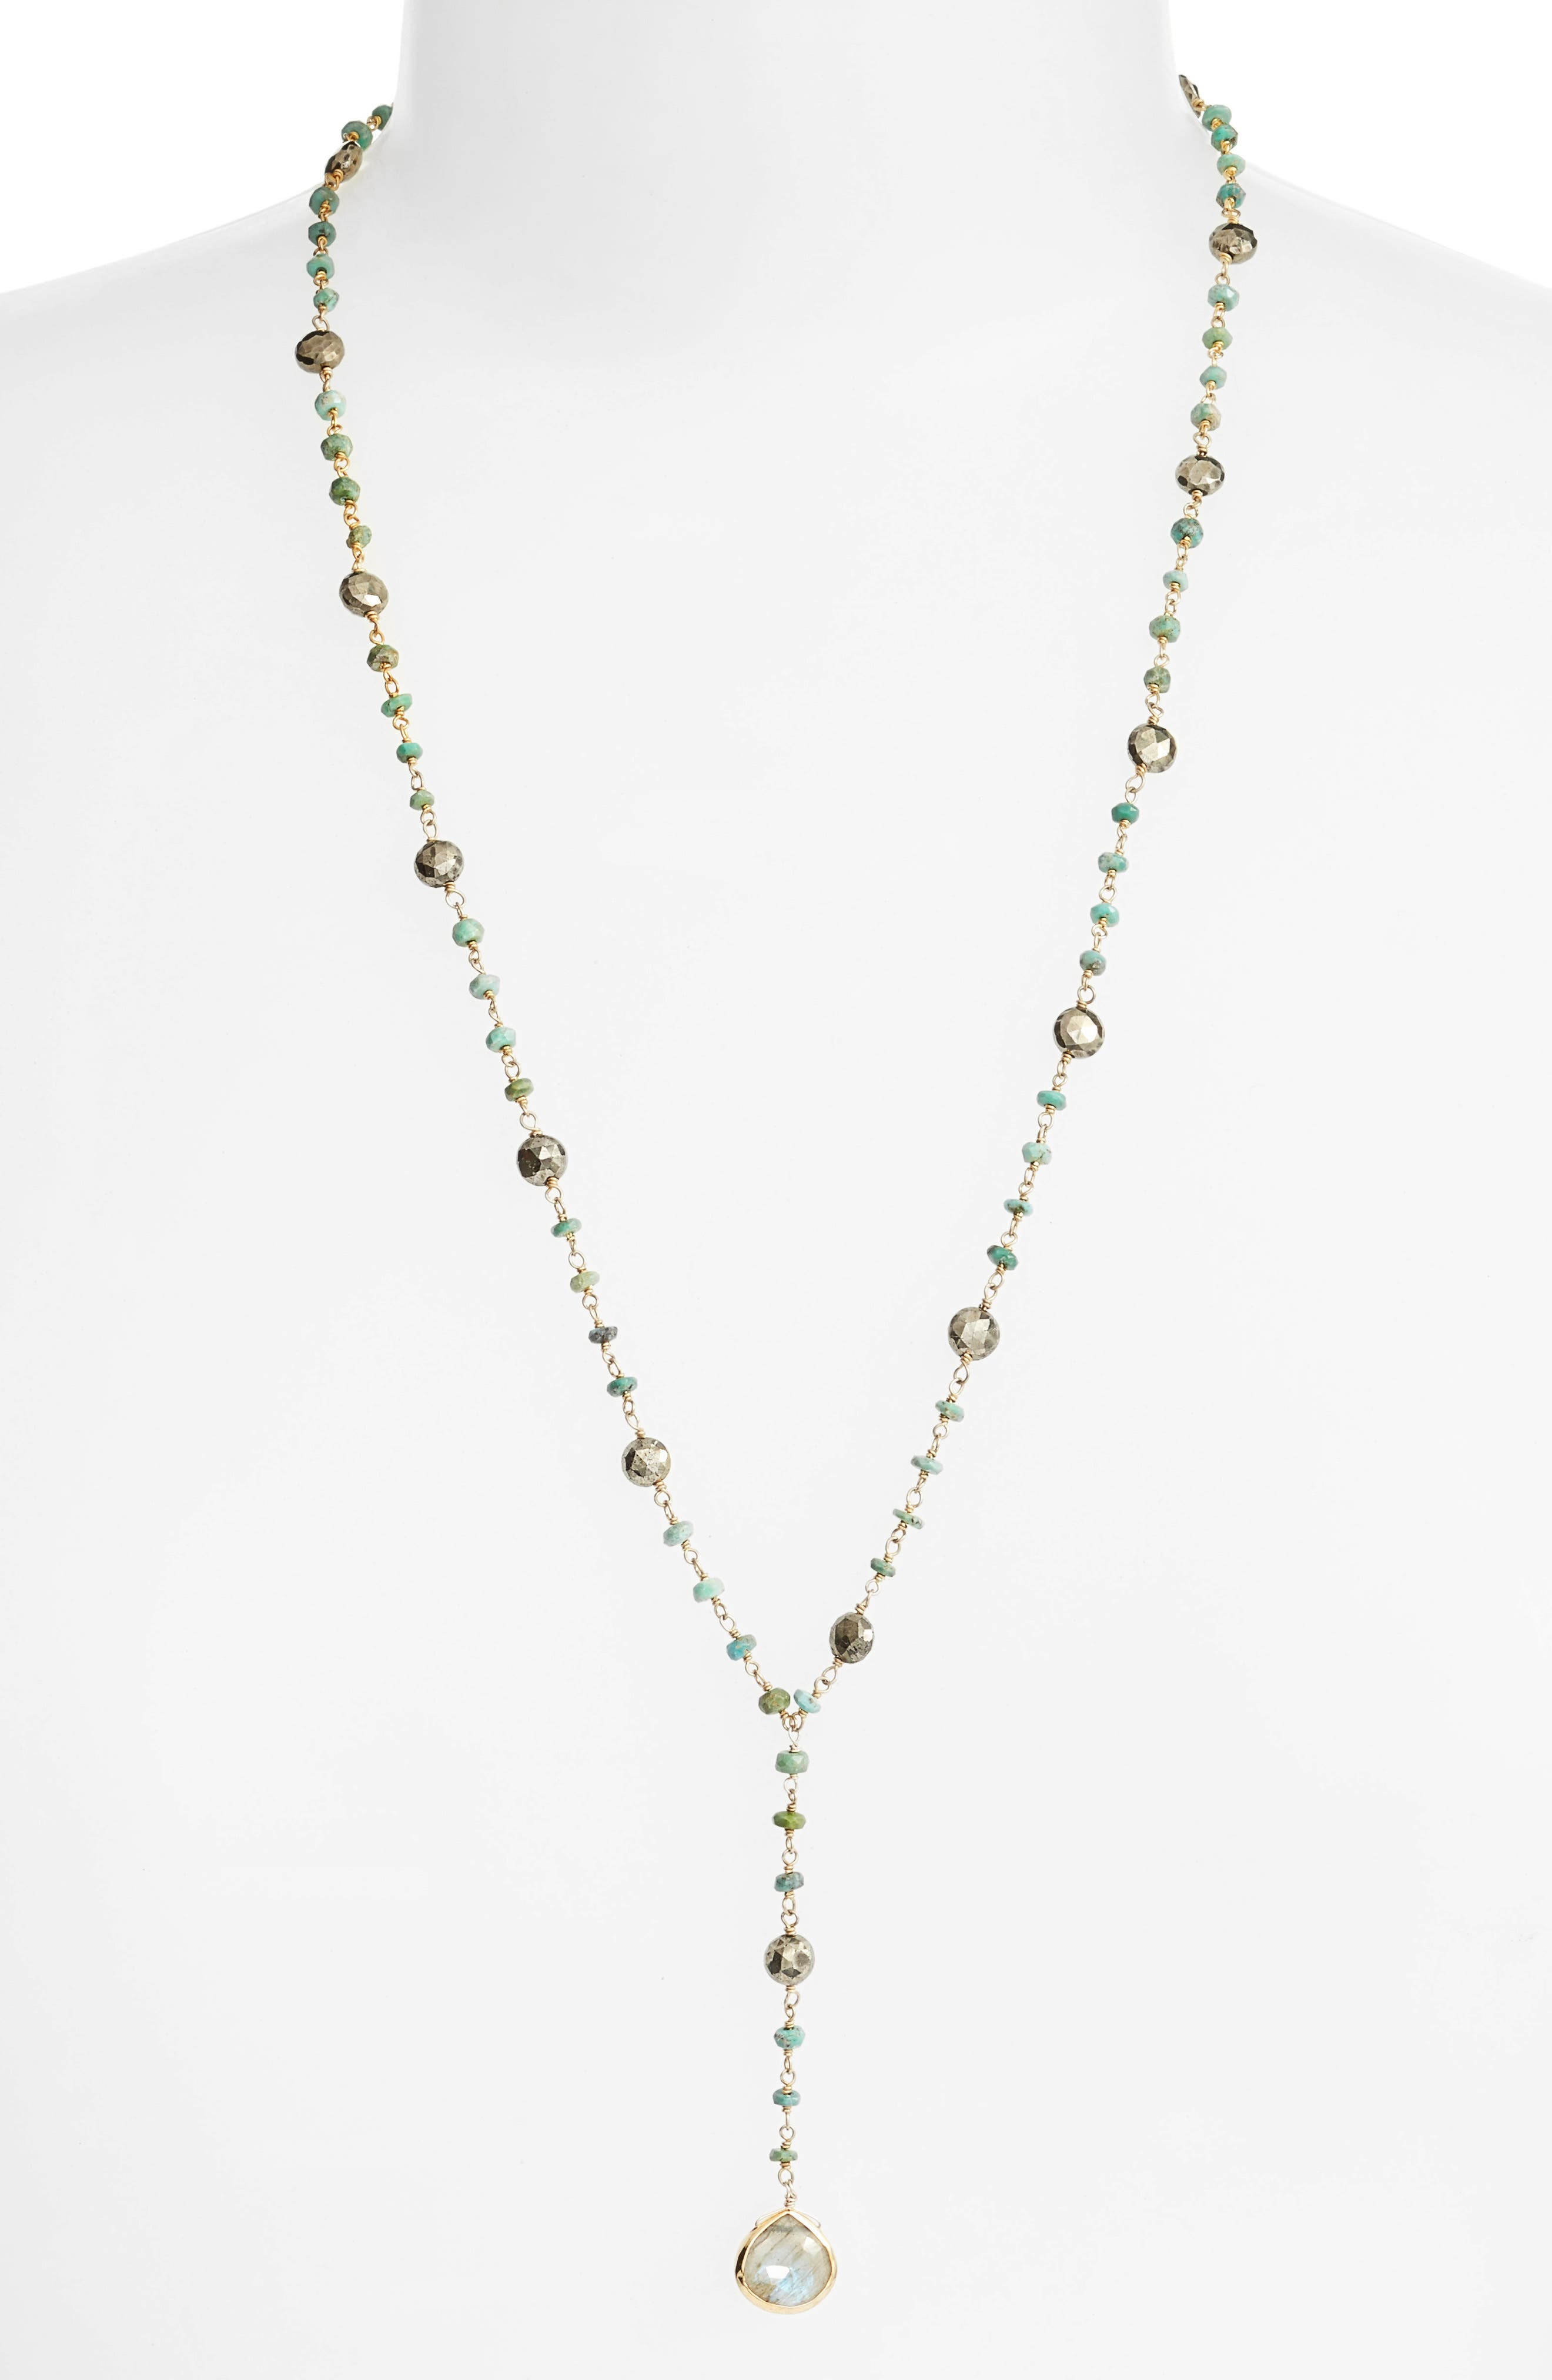 ela rae Yaeli Satellite 24 Semiprecious Stone Y-Necklace